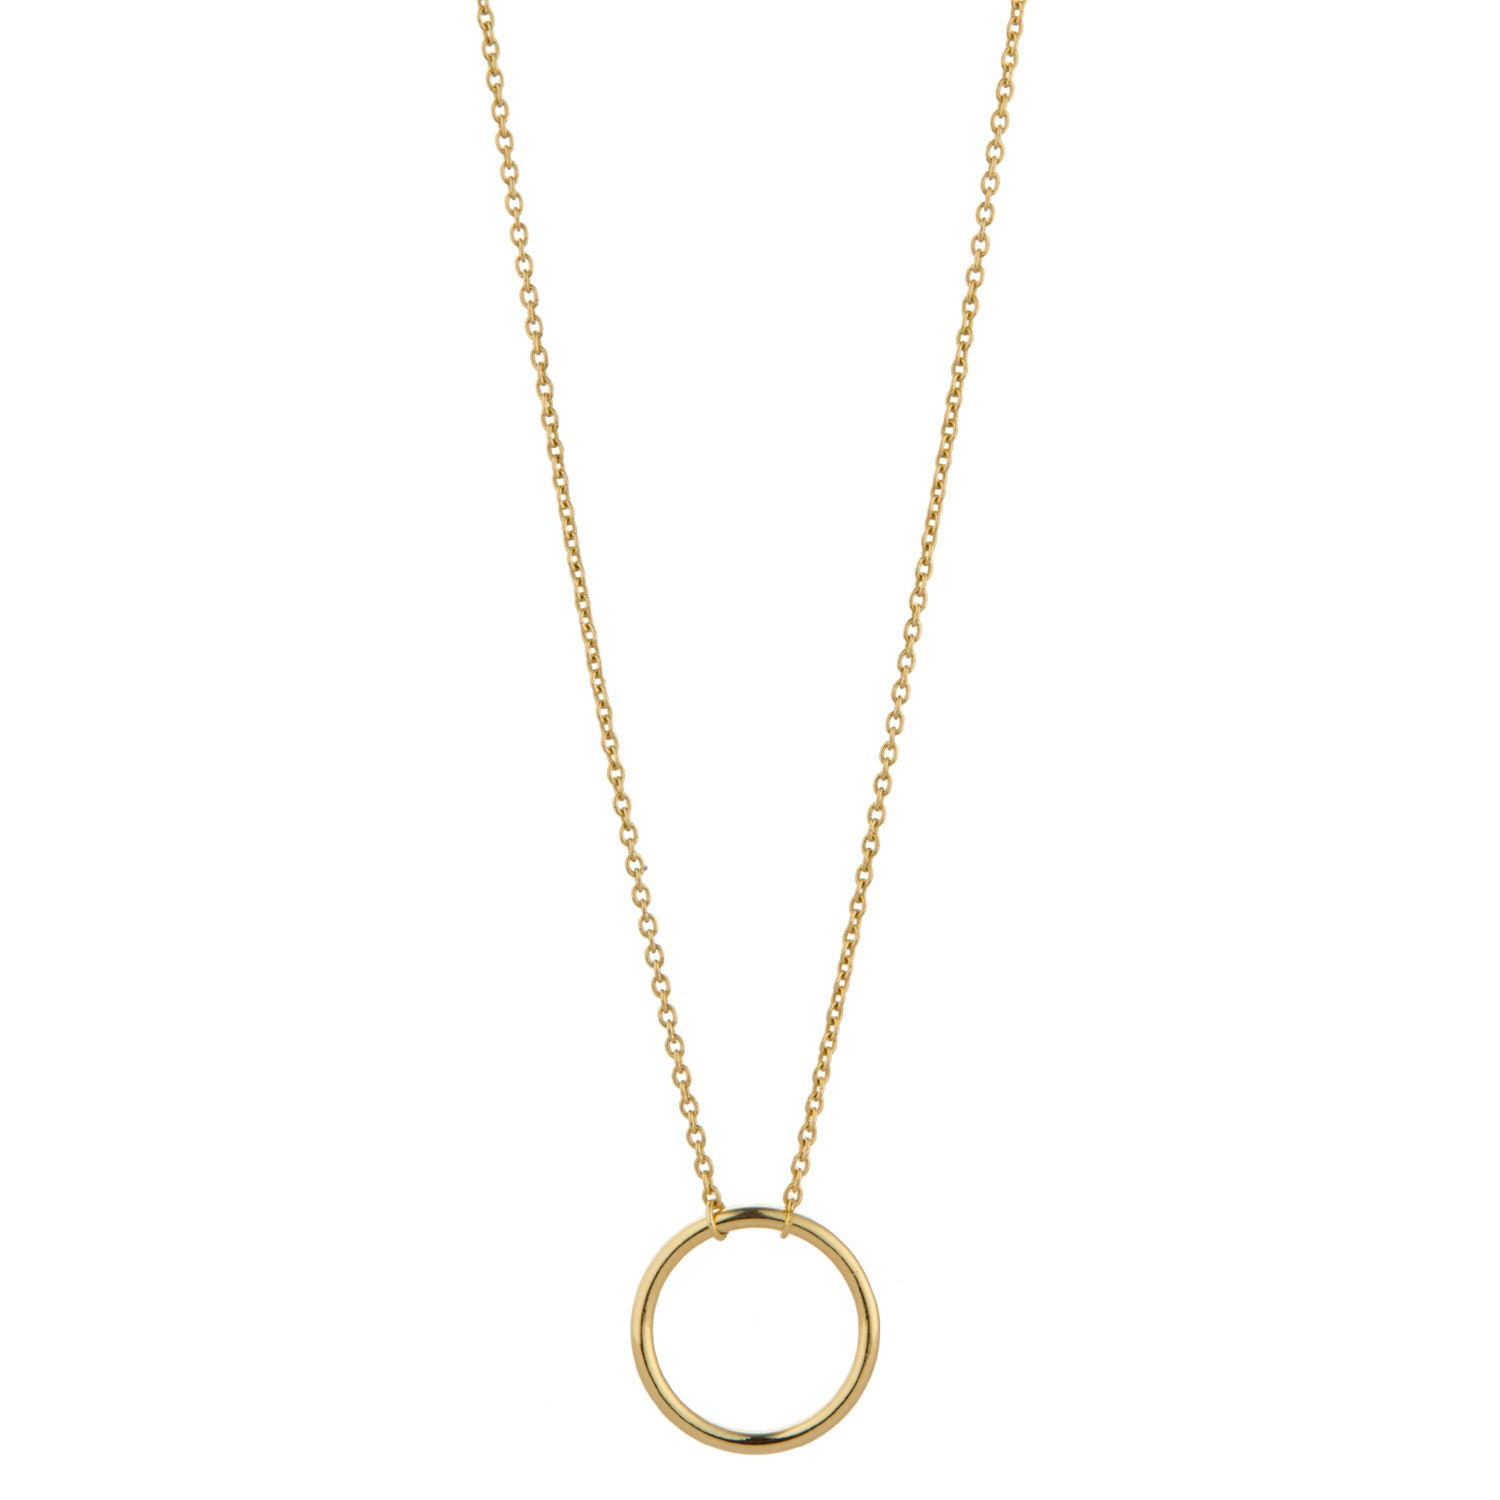 9kt Gold Floating Circle Necklace - MoMuse Jewellery